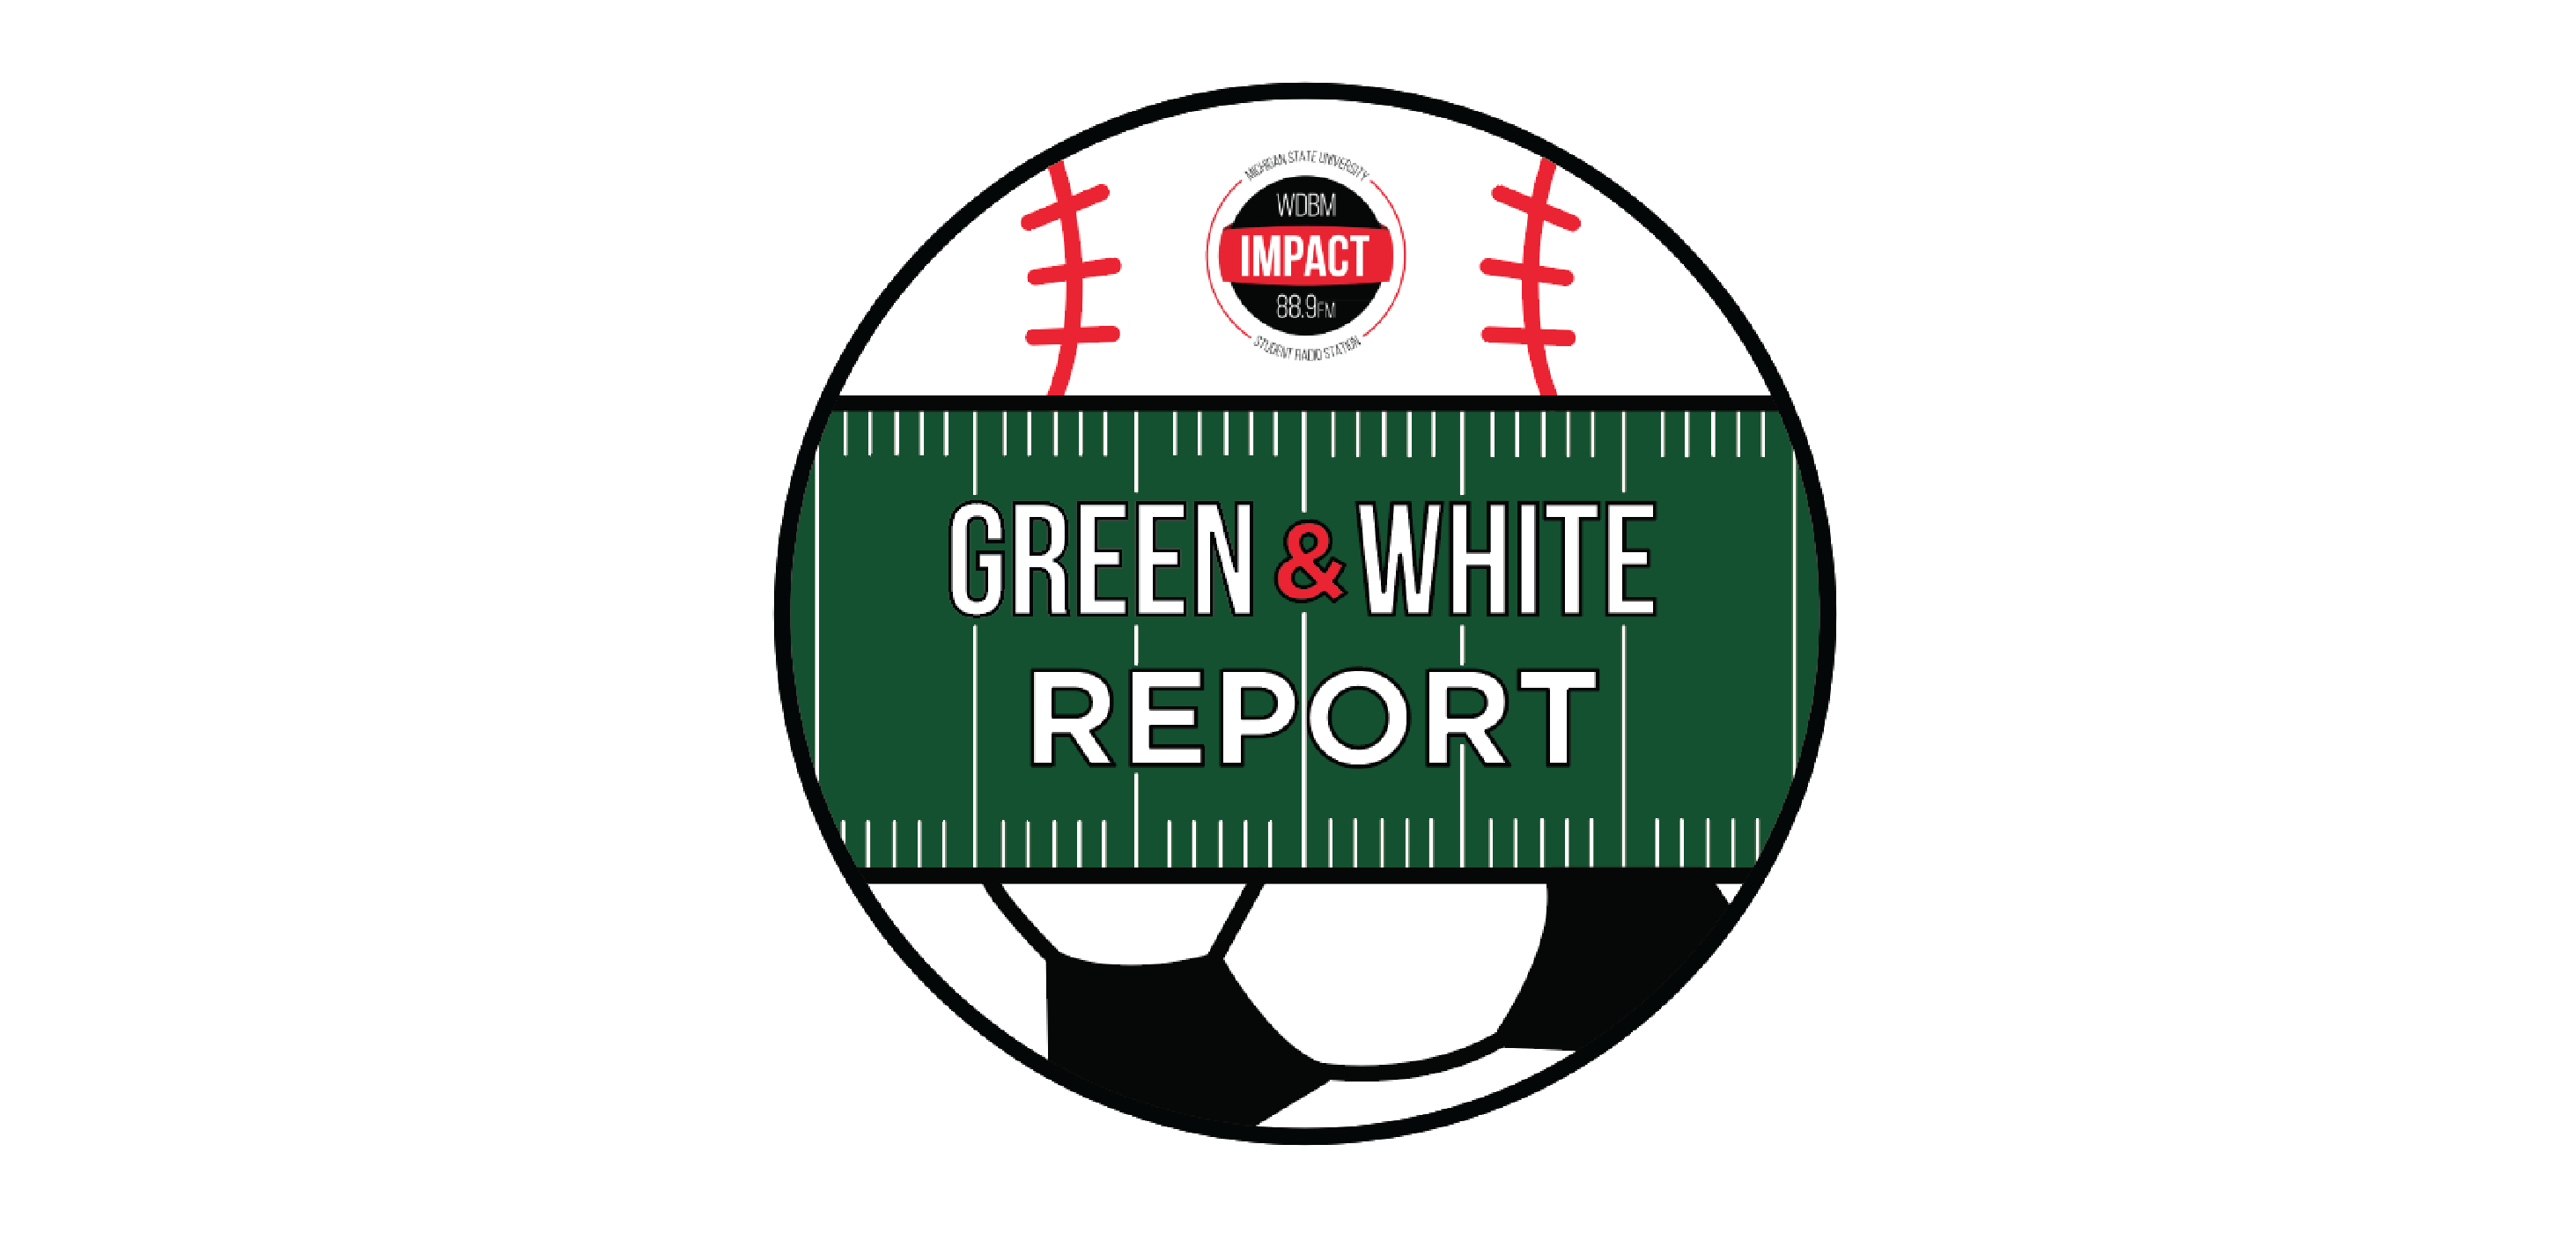 Green & White Report - 9/8/19 - You Know You're Back to School When...